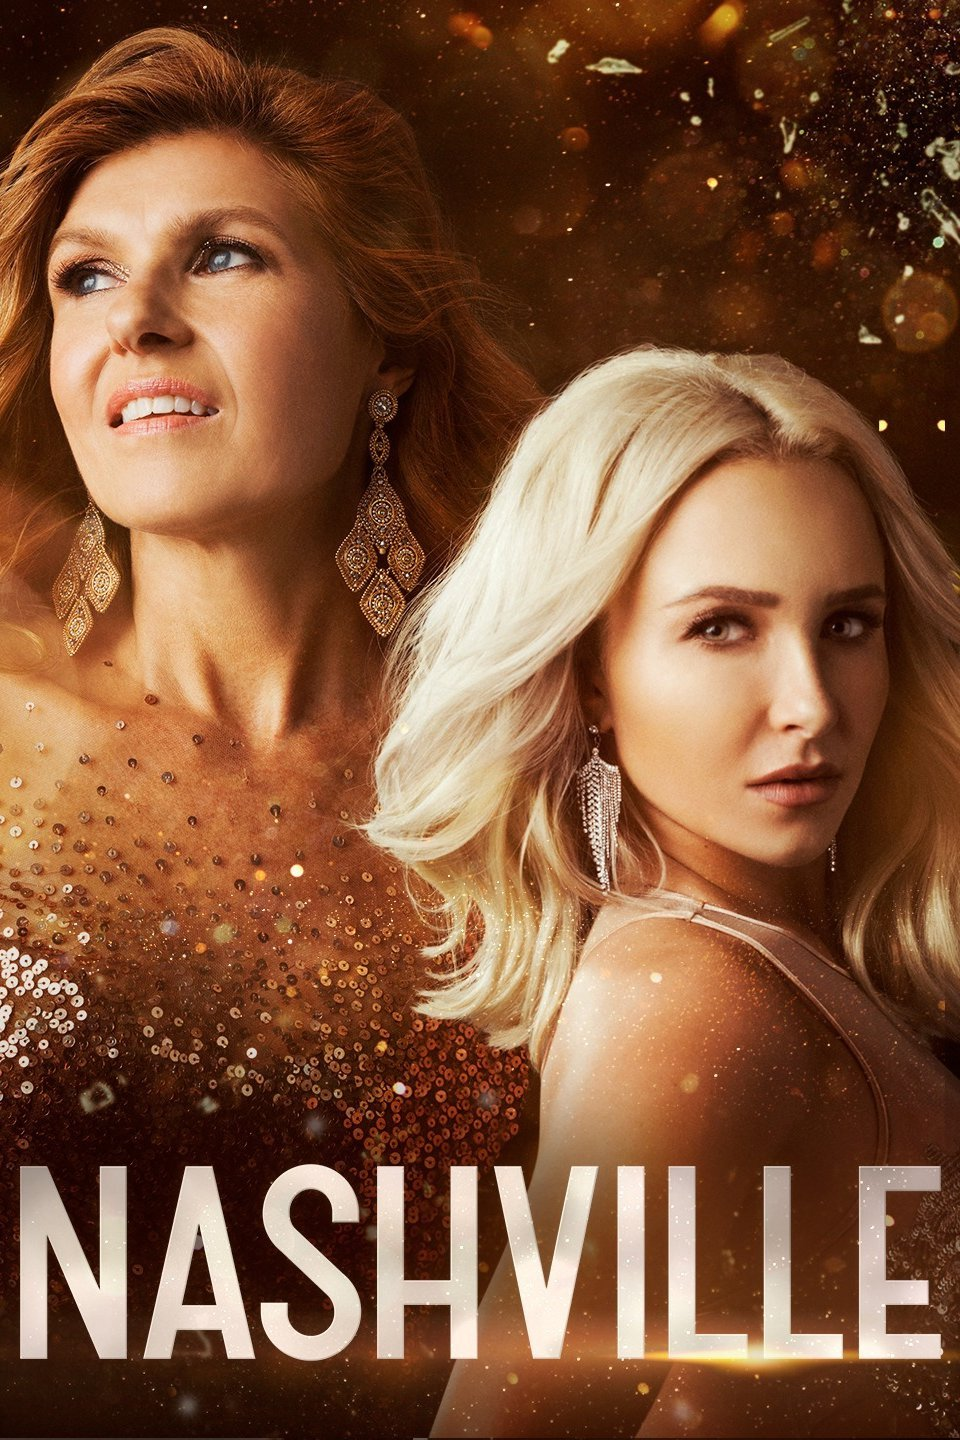 Nashville Tv Series Download Season 5 Episode 15 HDTV Micromkv